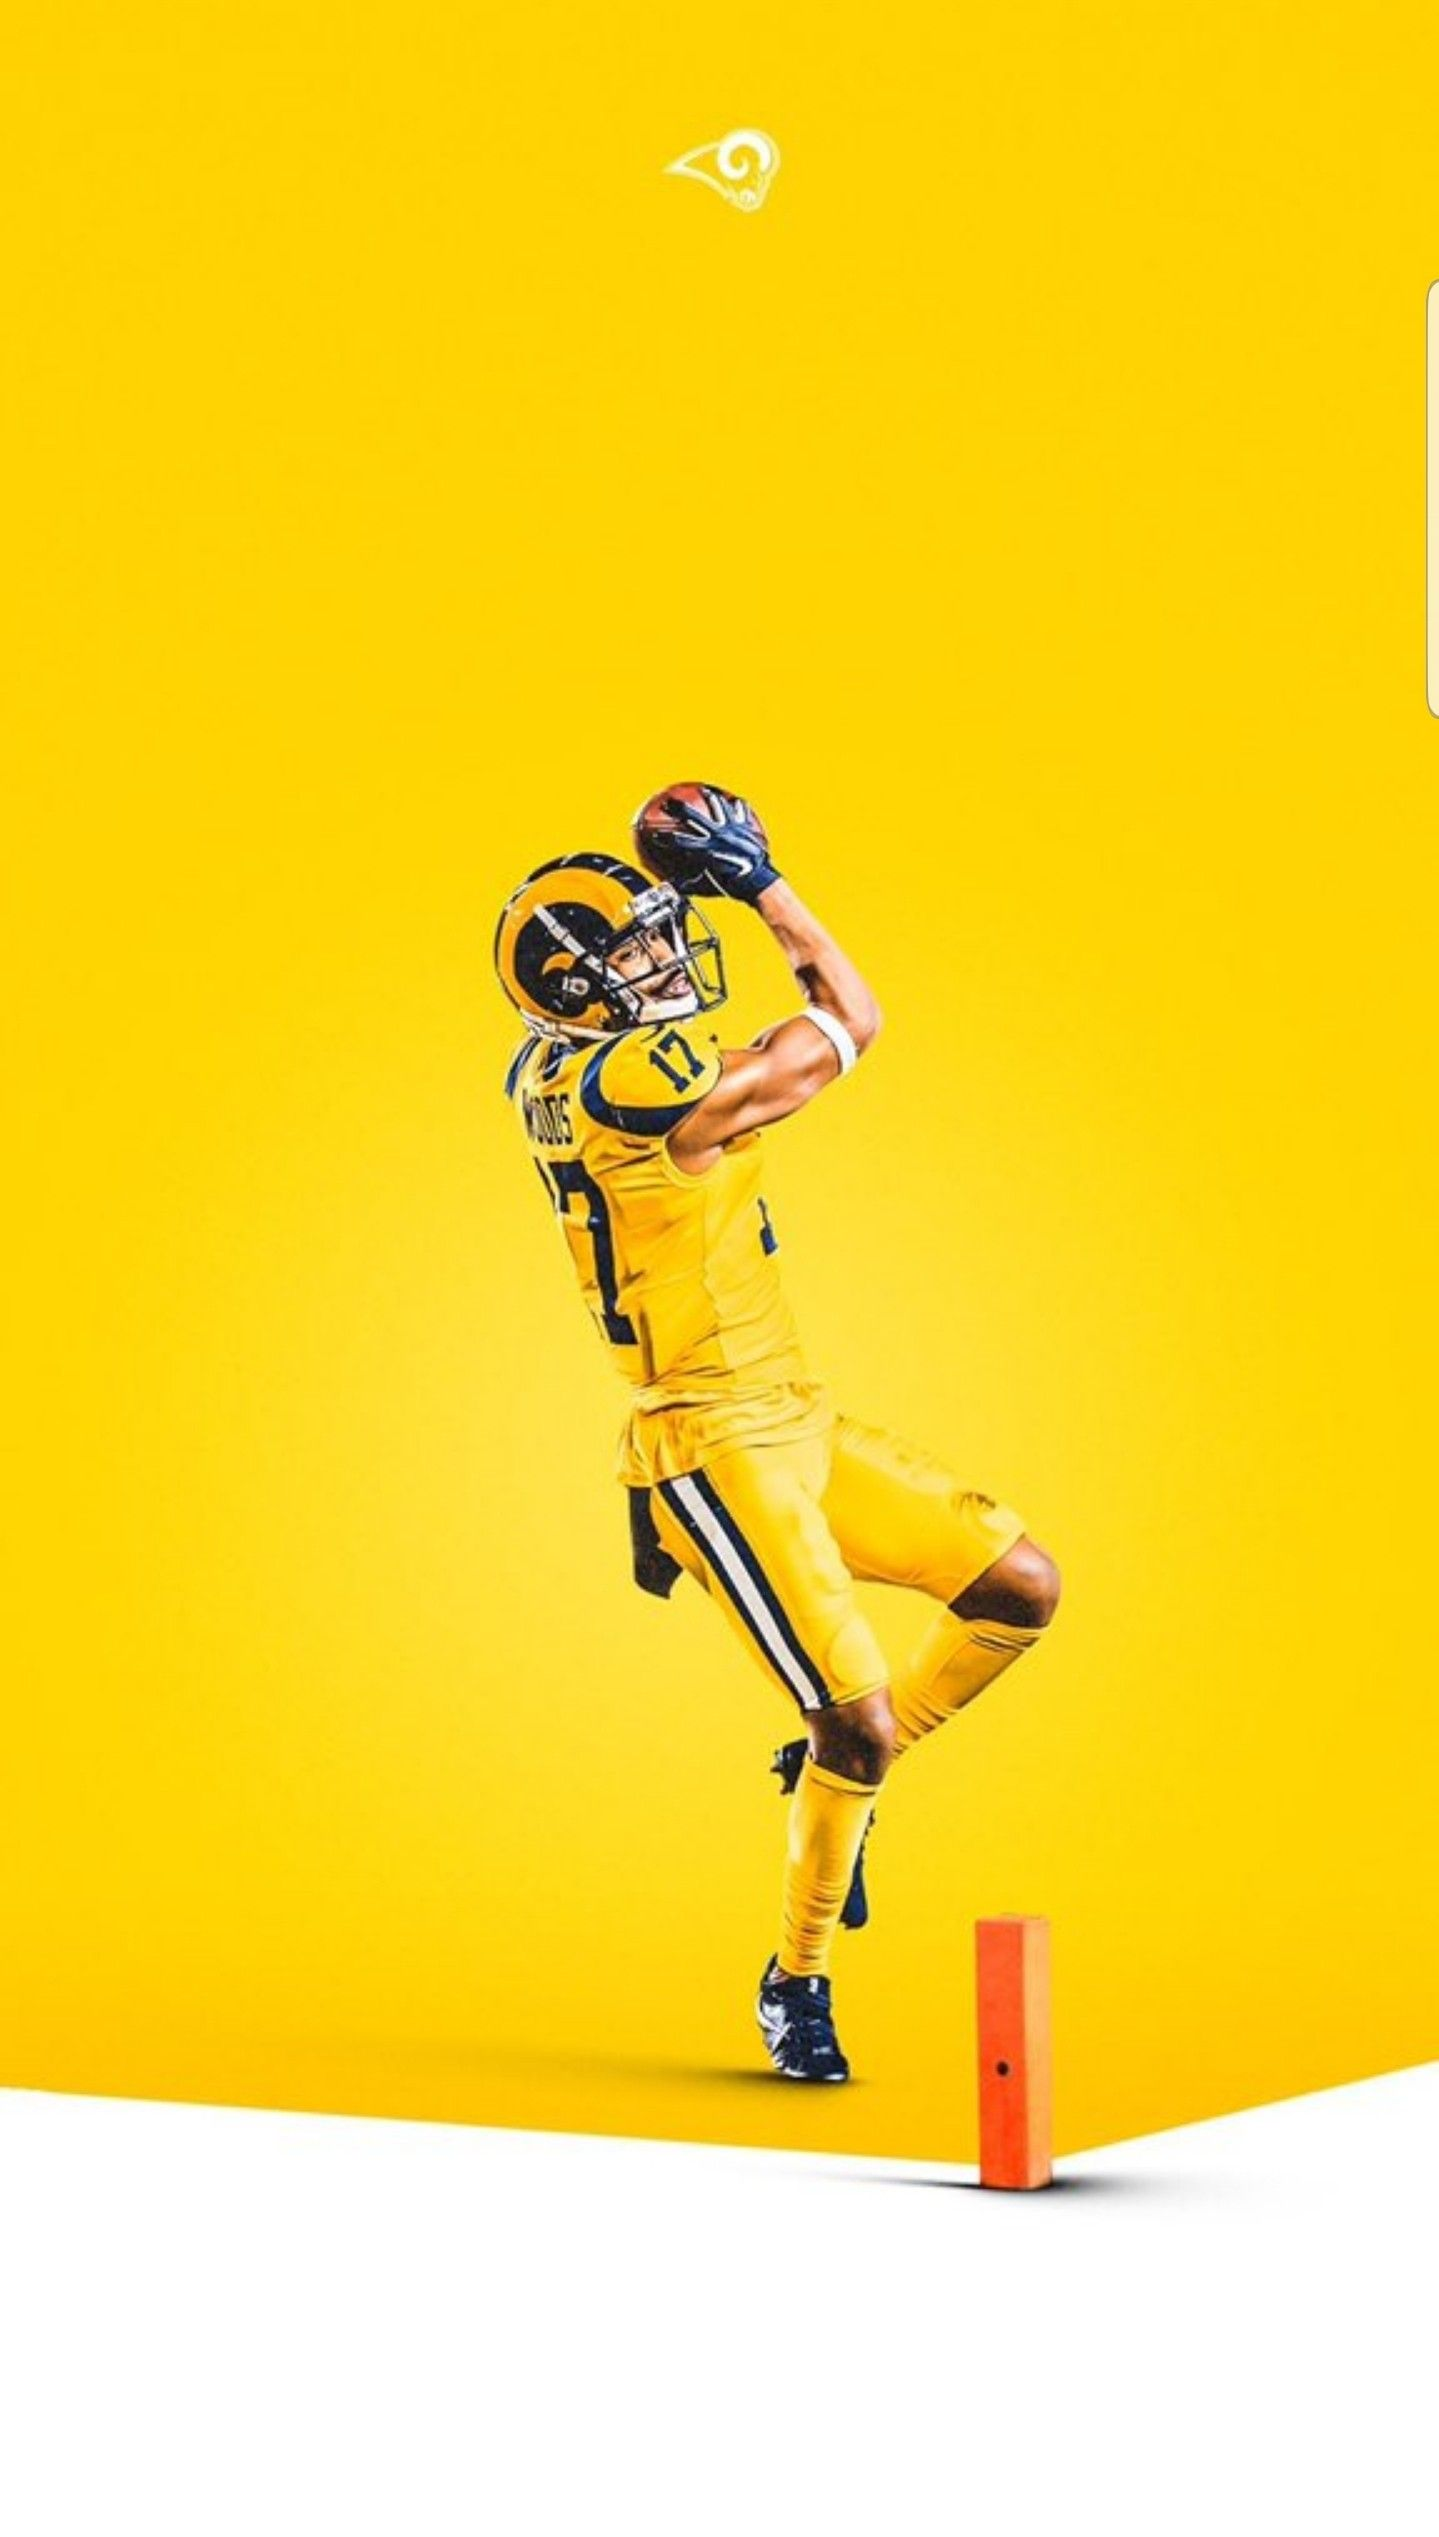 Pin By Jeff Standlee On La Rams Sports Graphic Design Sports Design Inspiration Sport Poster Design